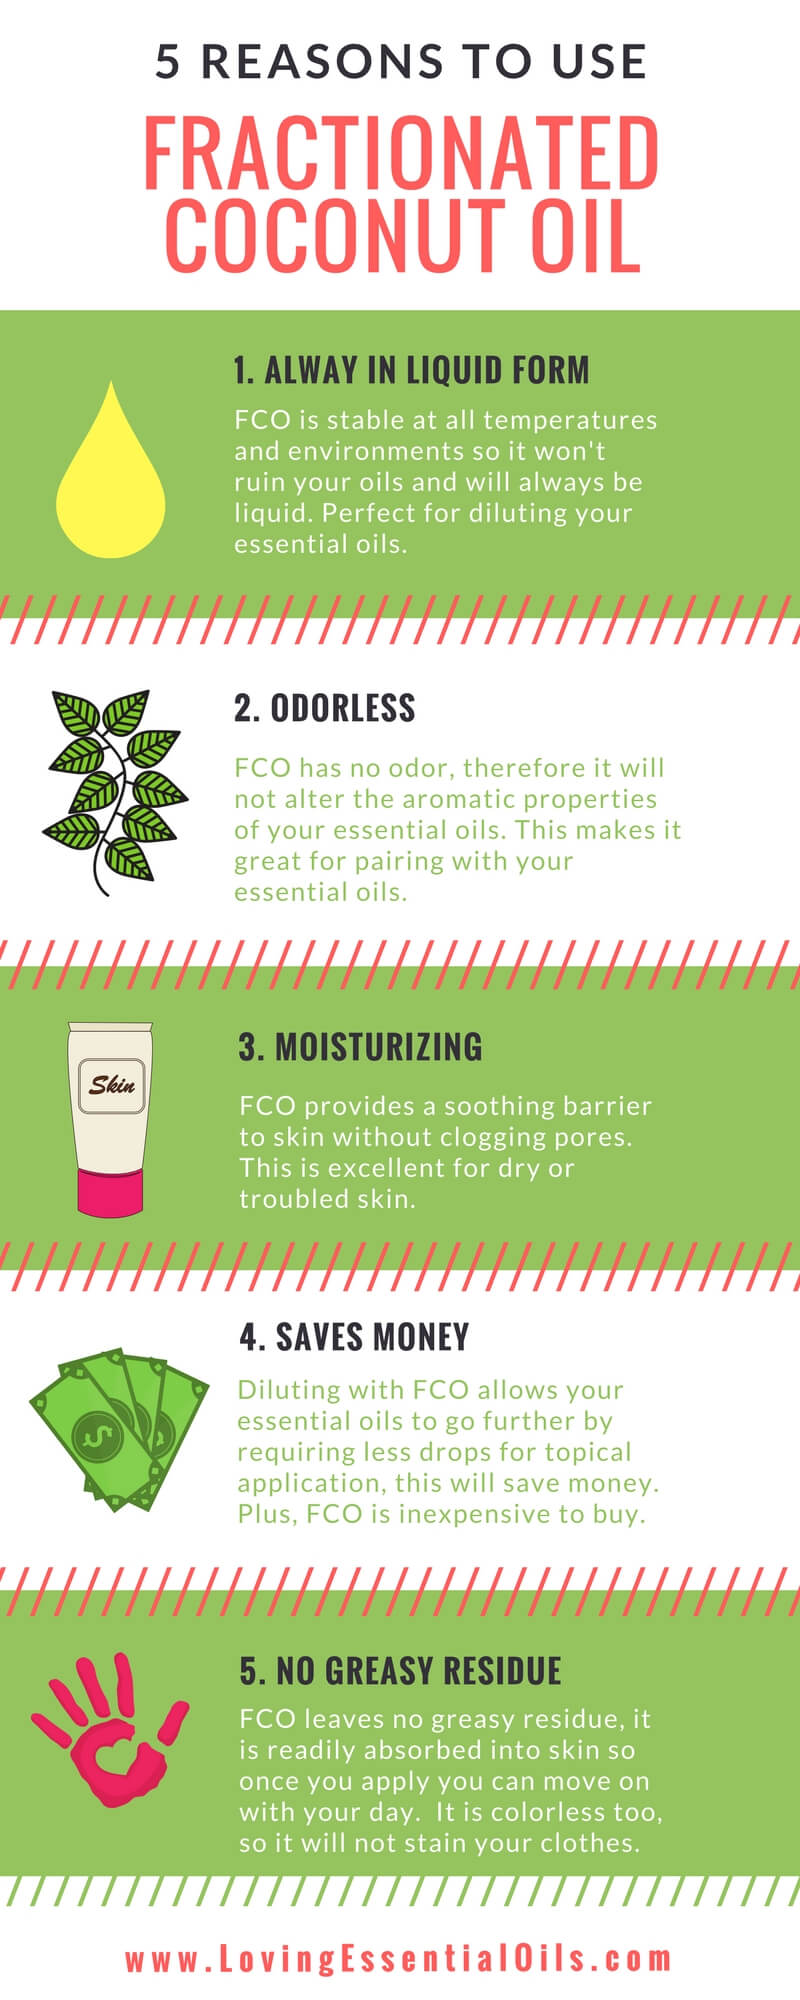 Why Use Fractionated Coconut Oil With your Essential Oils? 5 Reasons to Use Fractionated Coconut Oil